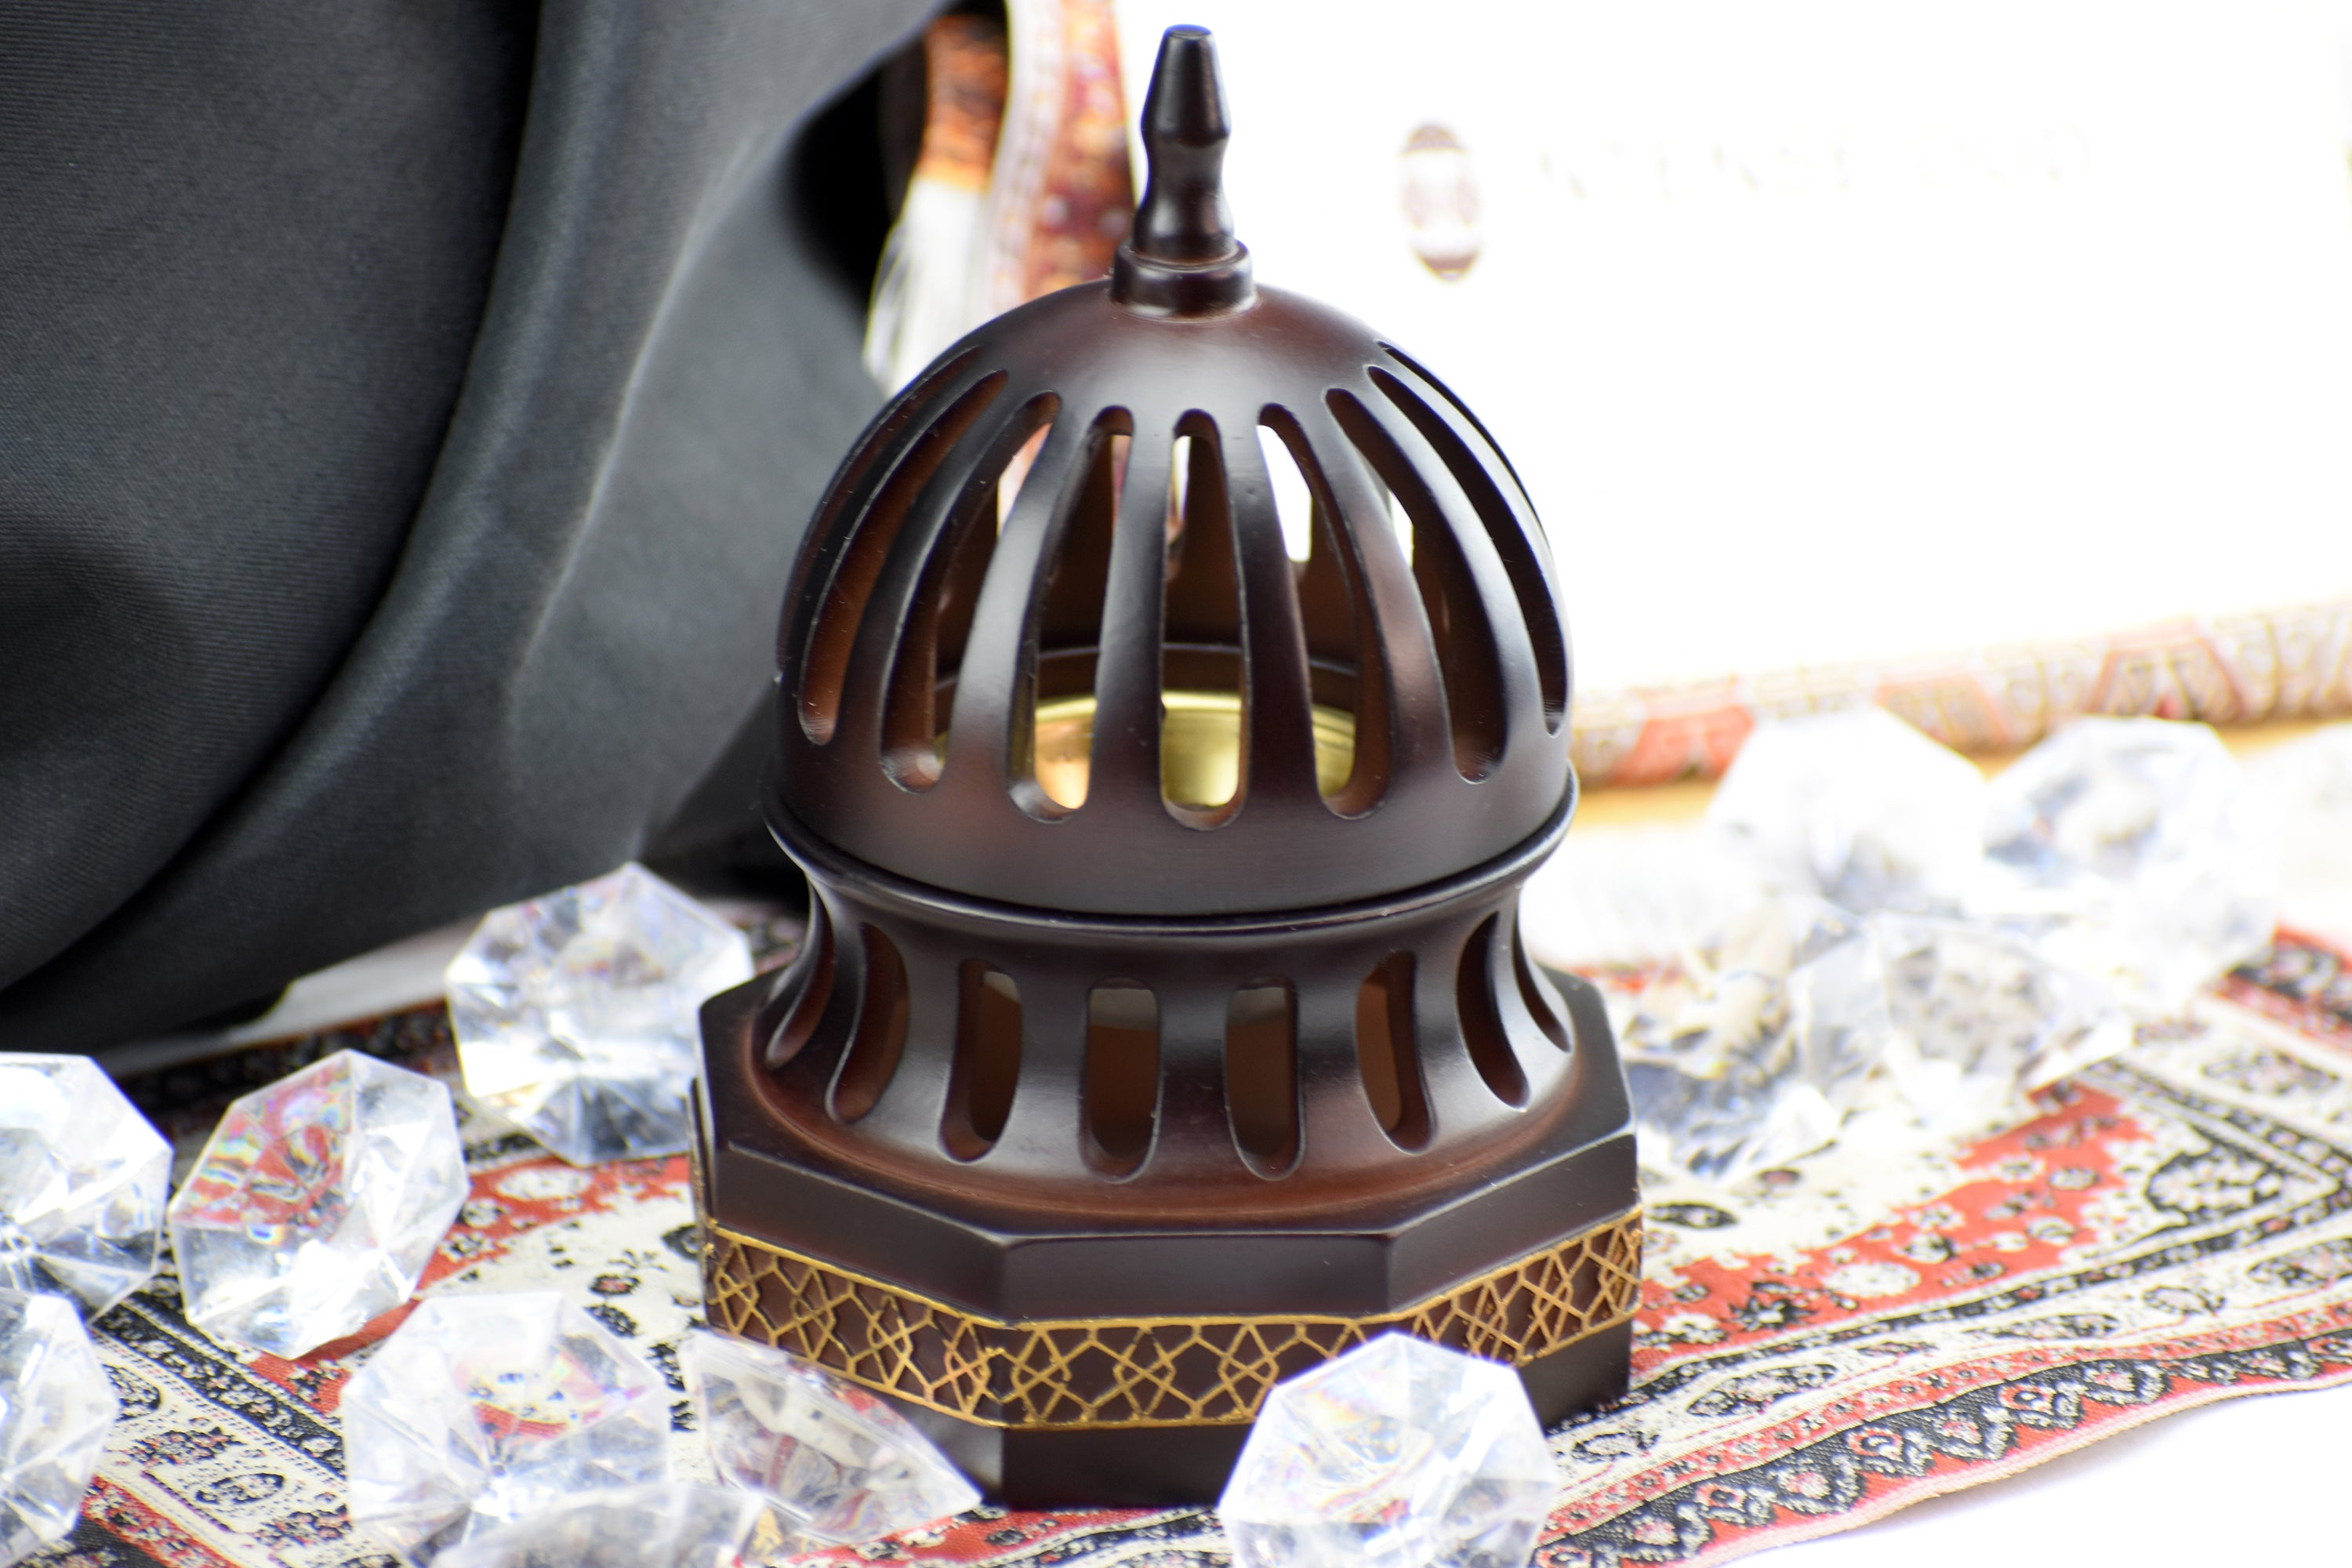 Classic Traditional Dome Style Closed Incense Bakhoor Burner - Brown - Intense oud